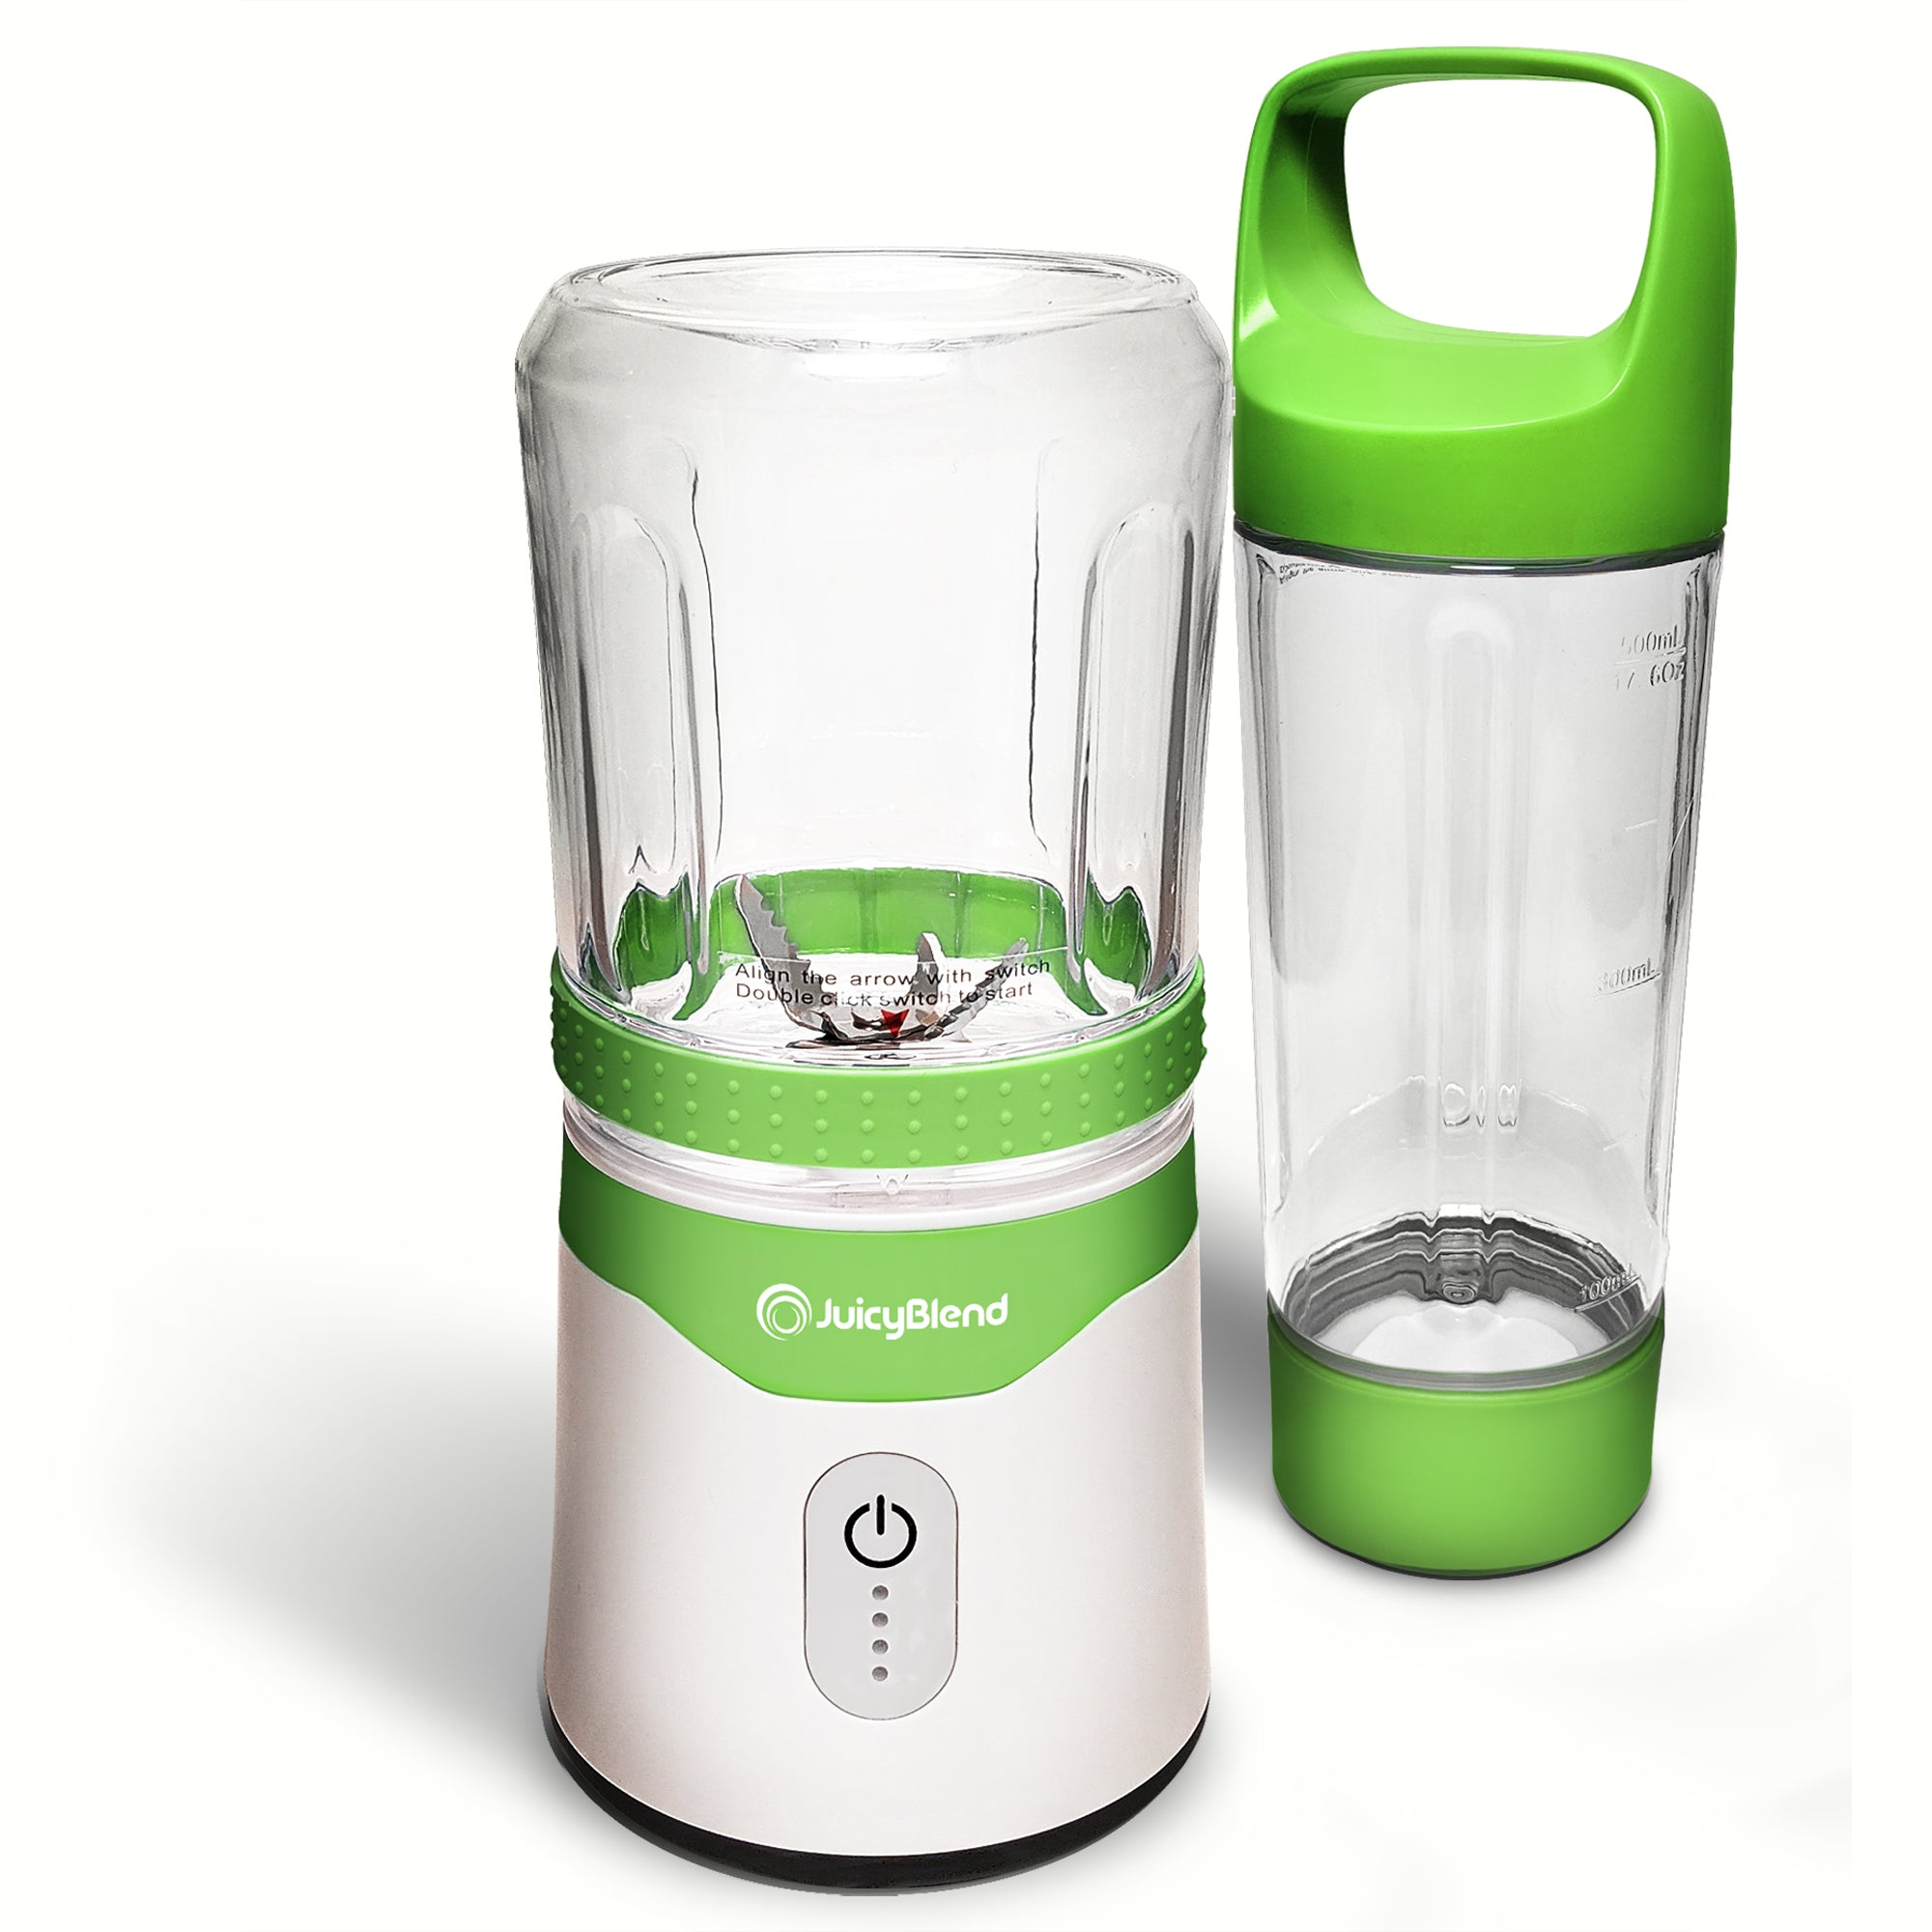 JuicyBlend green and white portable blender with 500ML clear plastic jar with green lid and 300ML clear plastic jar with blender motor base.